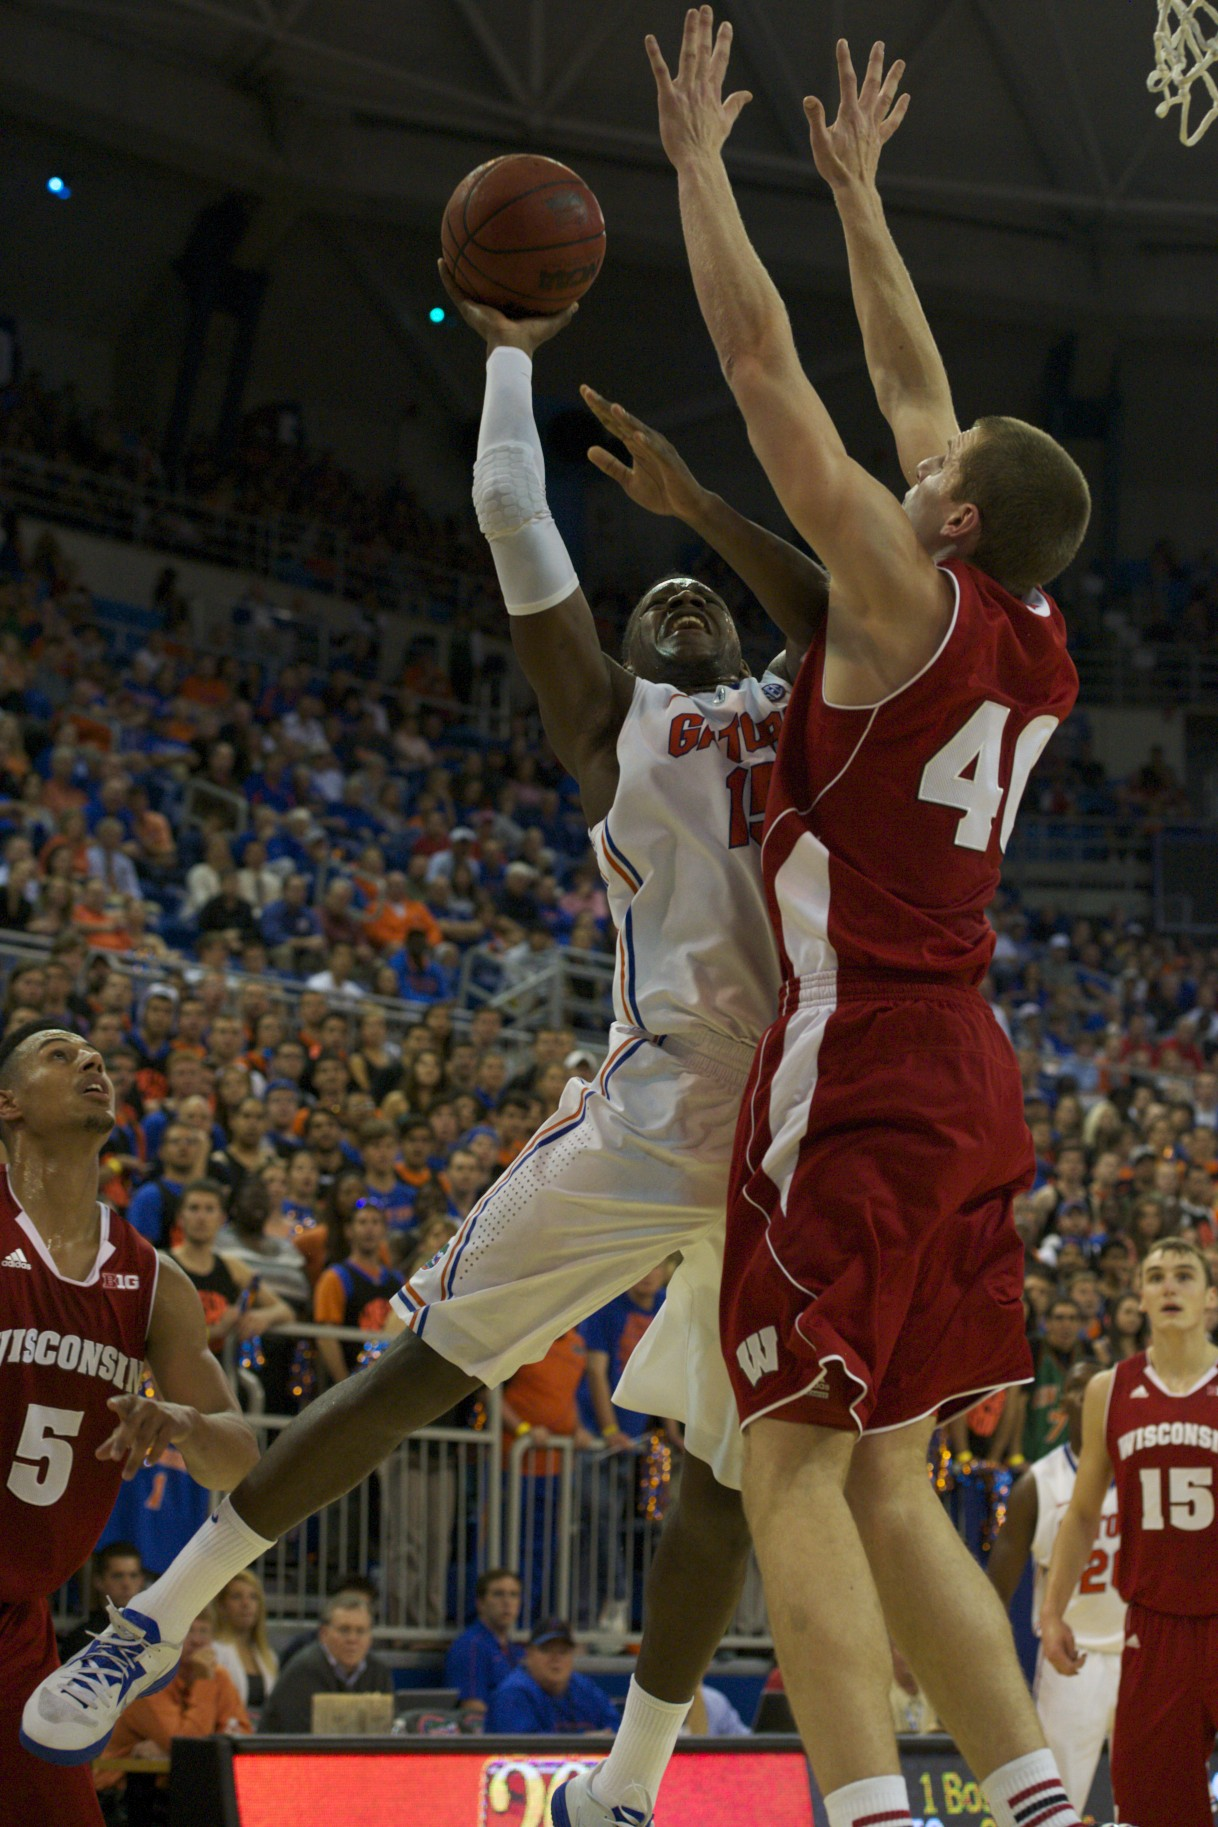 Will Yeguete (15) scores on Wisconsin defender Wednesday night.